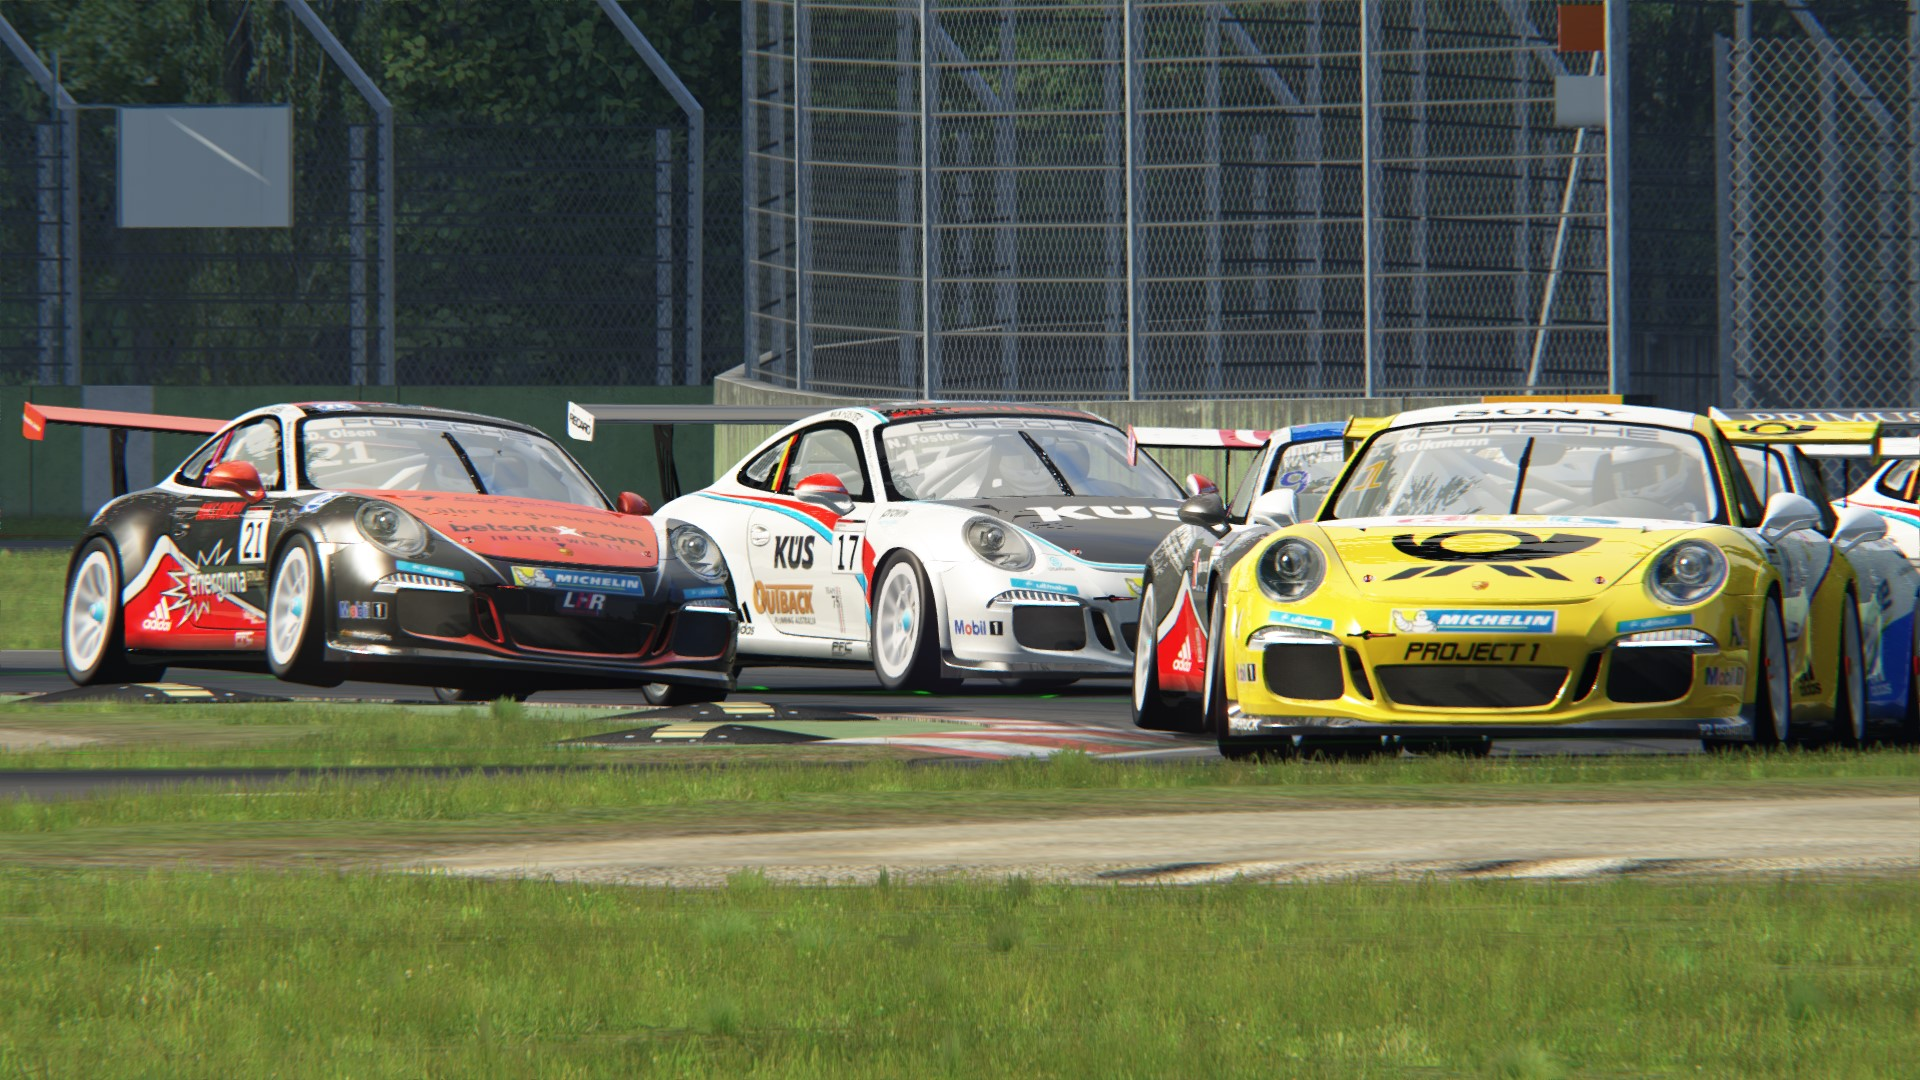 Screenshot_2013gt3cup_imola_27-4-116-19-41-50.jpg